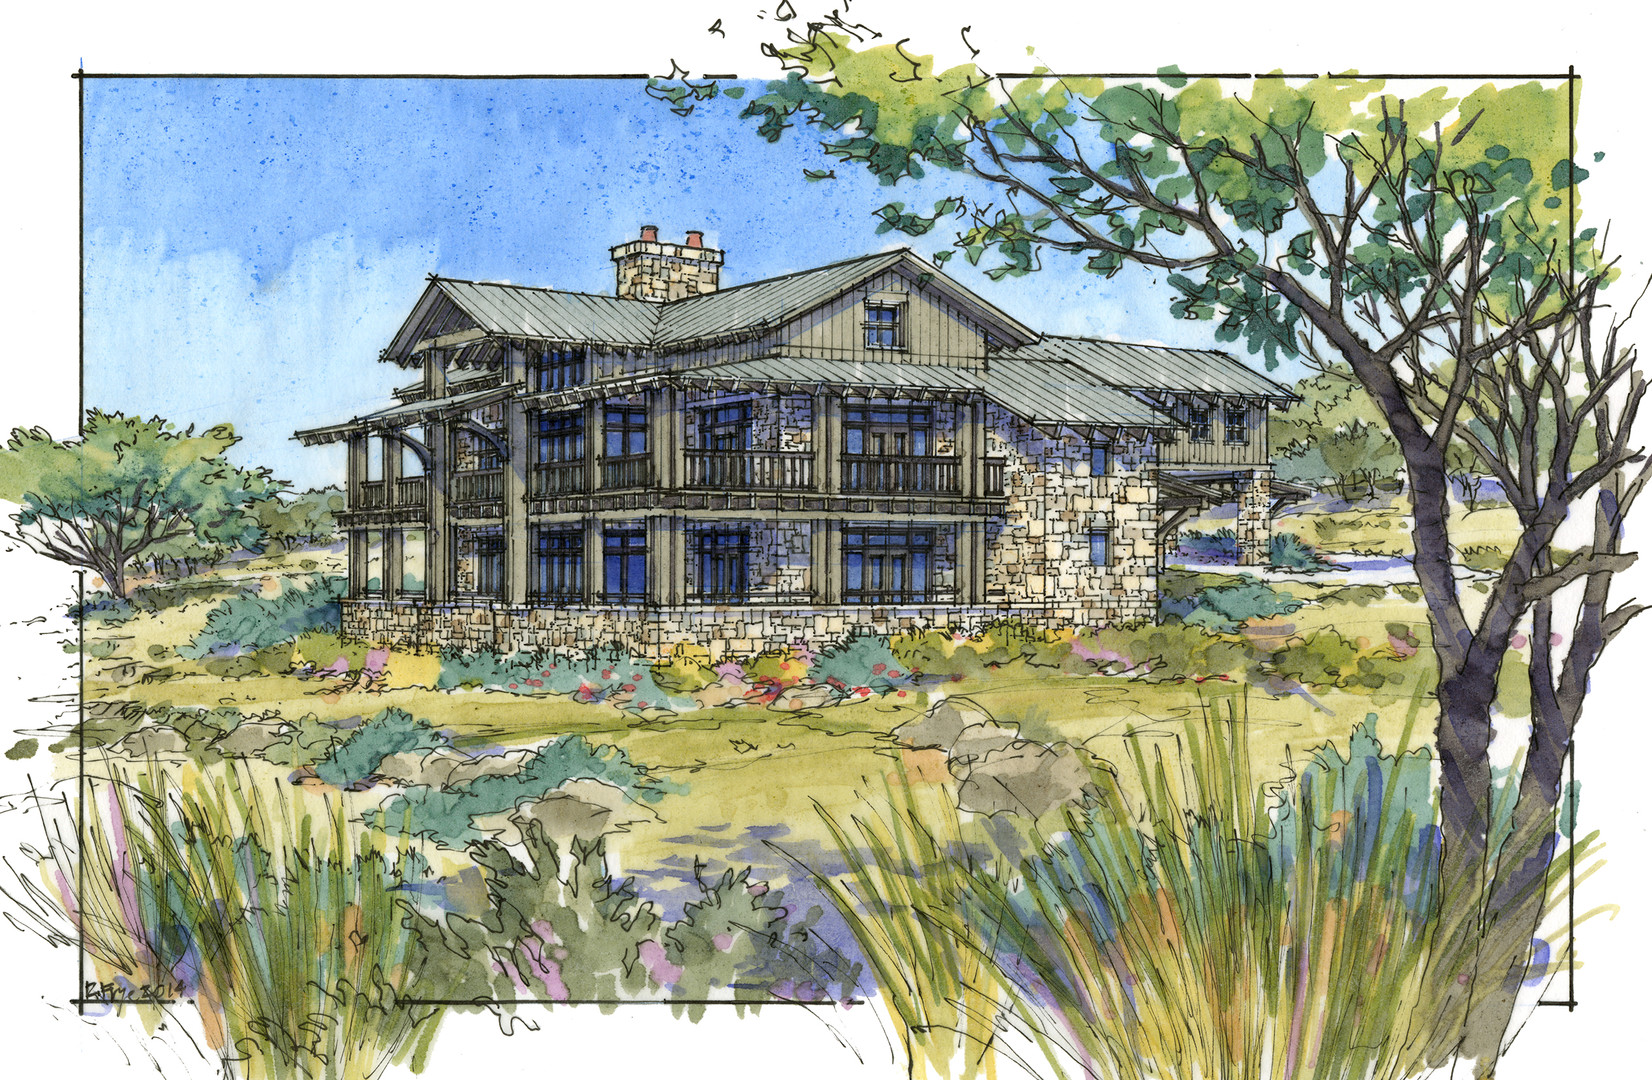 St. James River Ranch Concept